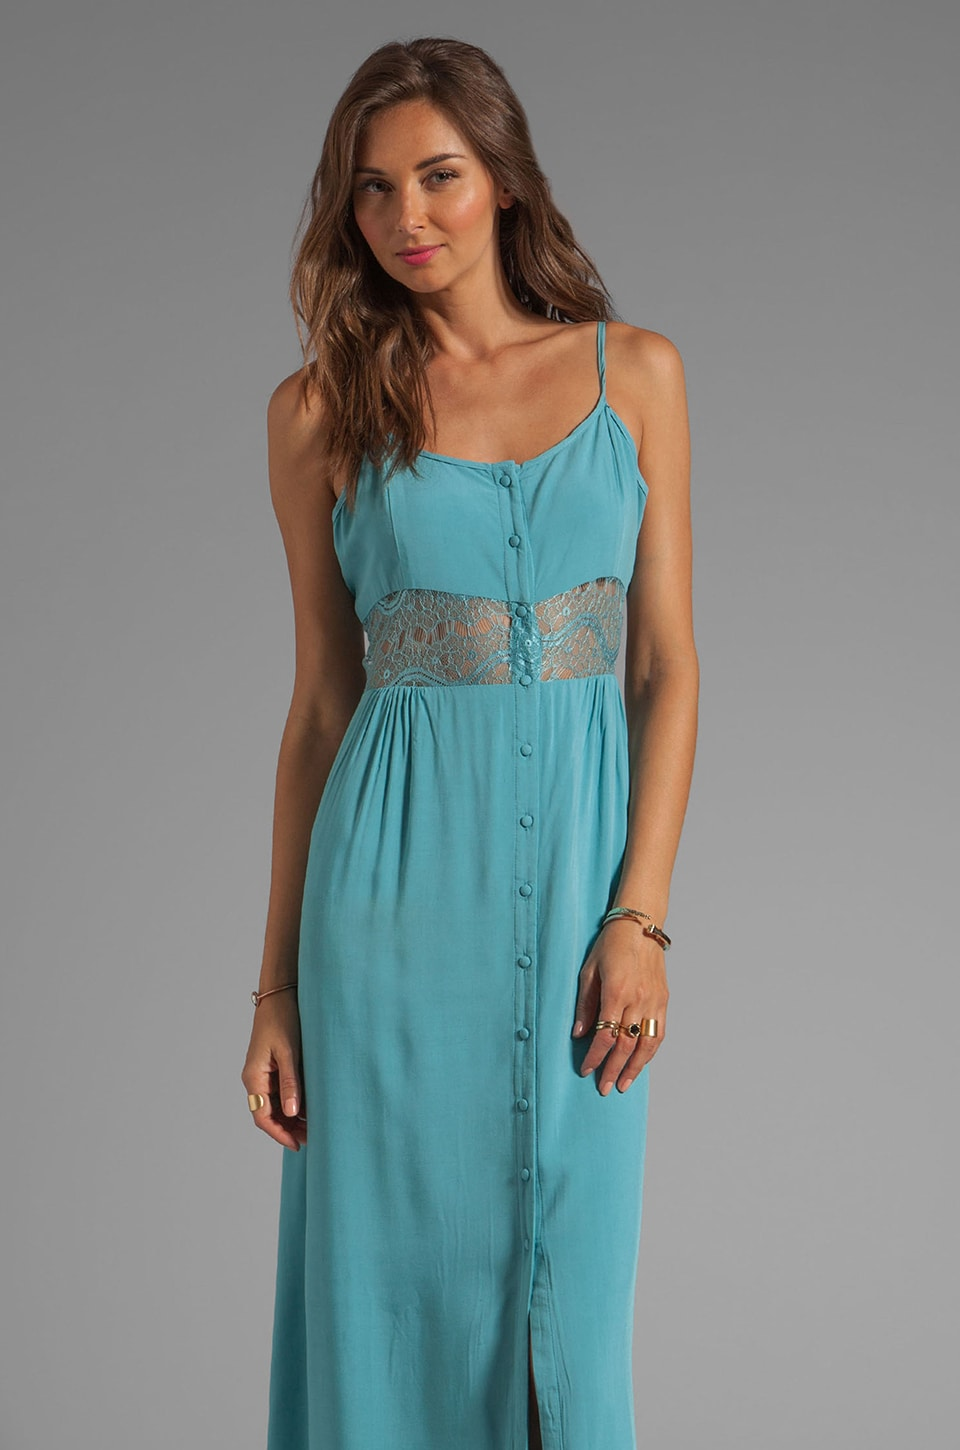 JARLO Patricia Lace Inset Maxi Dress in Blue